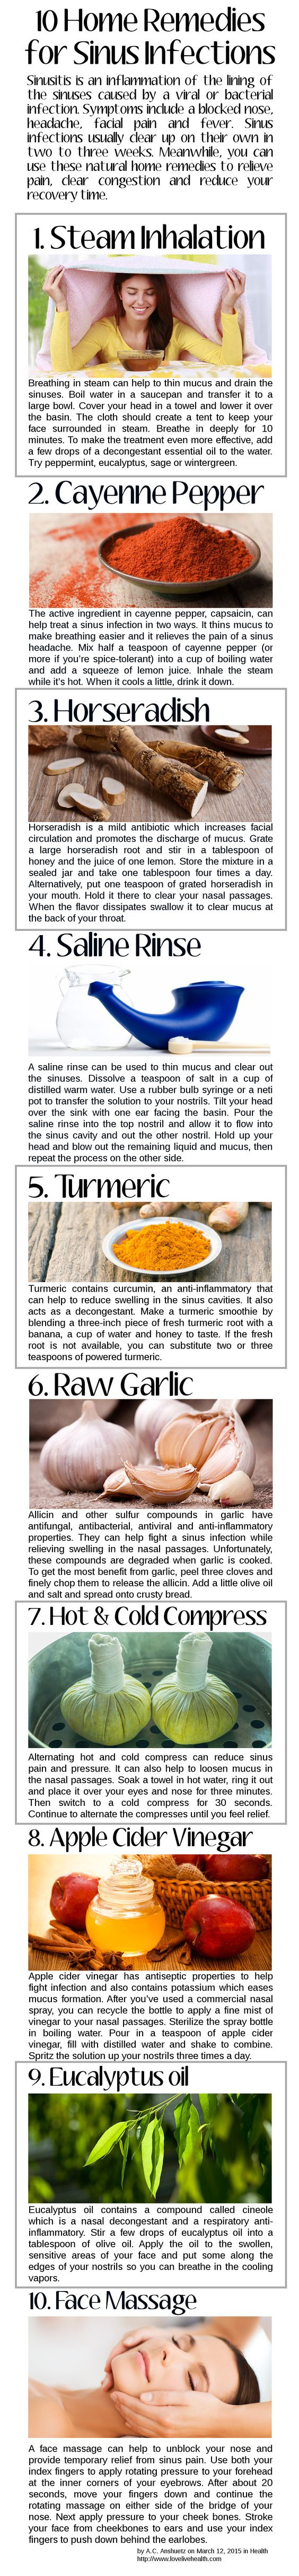 Sinusitis is an inflammation of the lining of the sinuses caused by a viral or bacterial infection. Symptoms include a blocked nose, headache, facial pain and fever. Sinus infections usually clear up on their own in two to three weeks. Meanwhile, you can use these natural home remedies to relieve pain, clear congestion and reduce your recovery time.